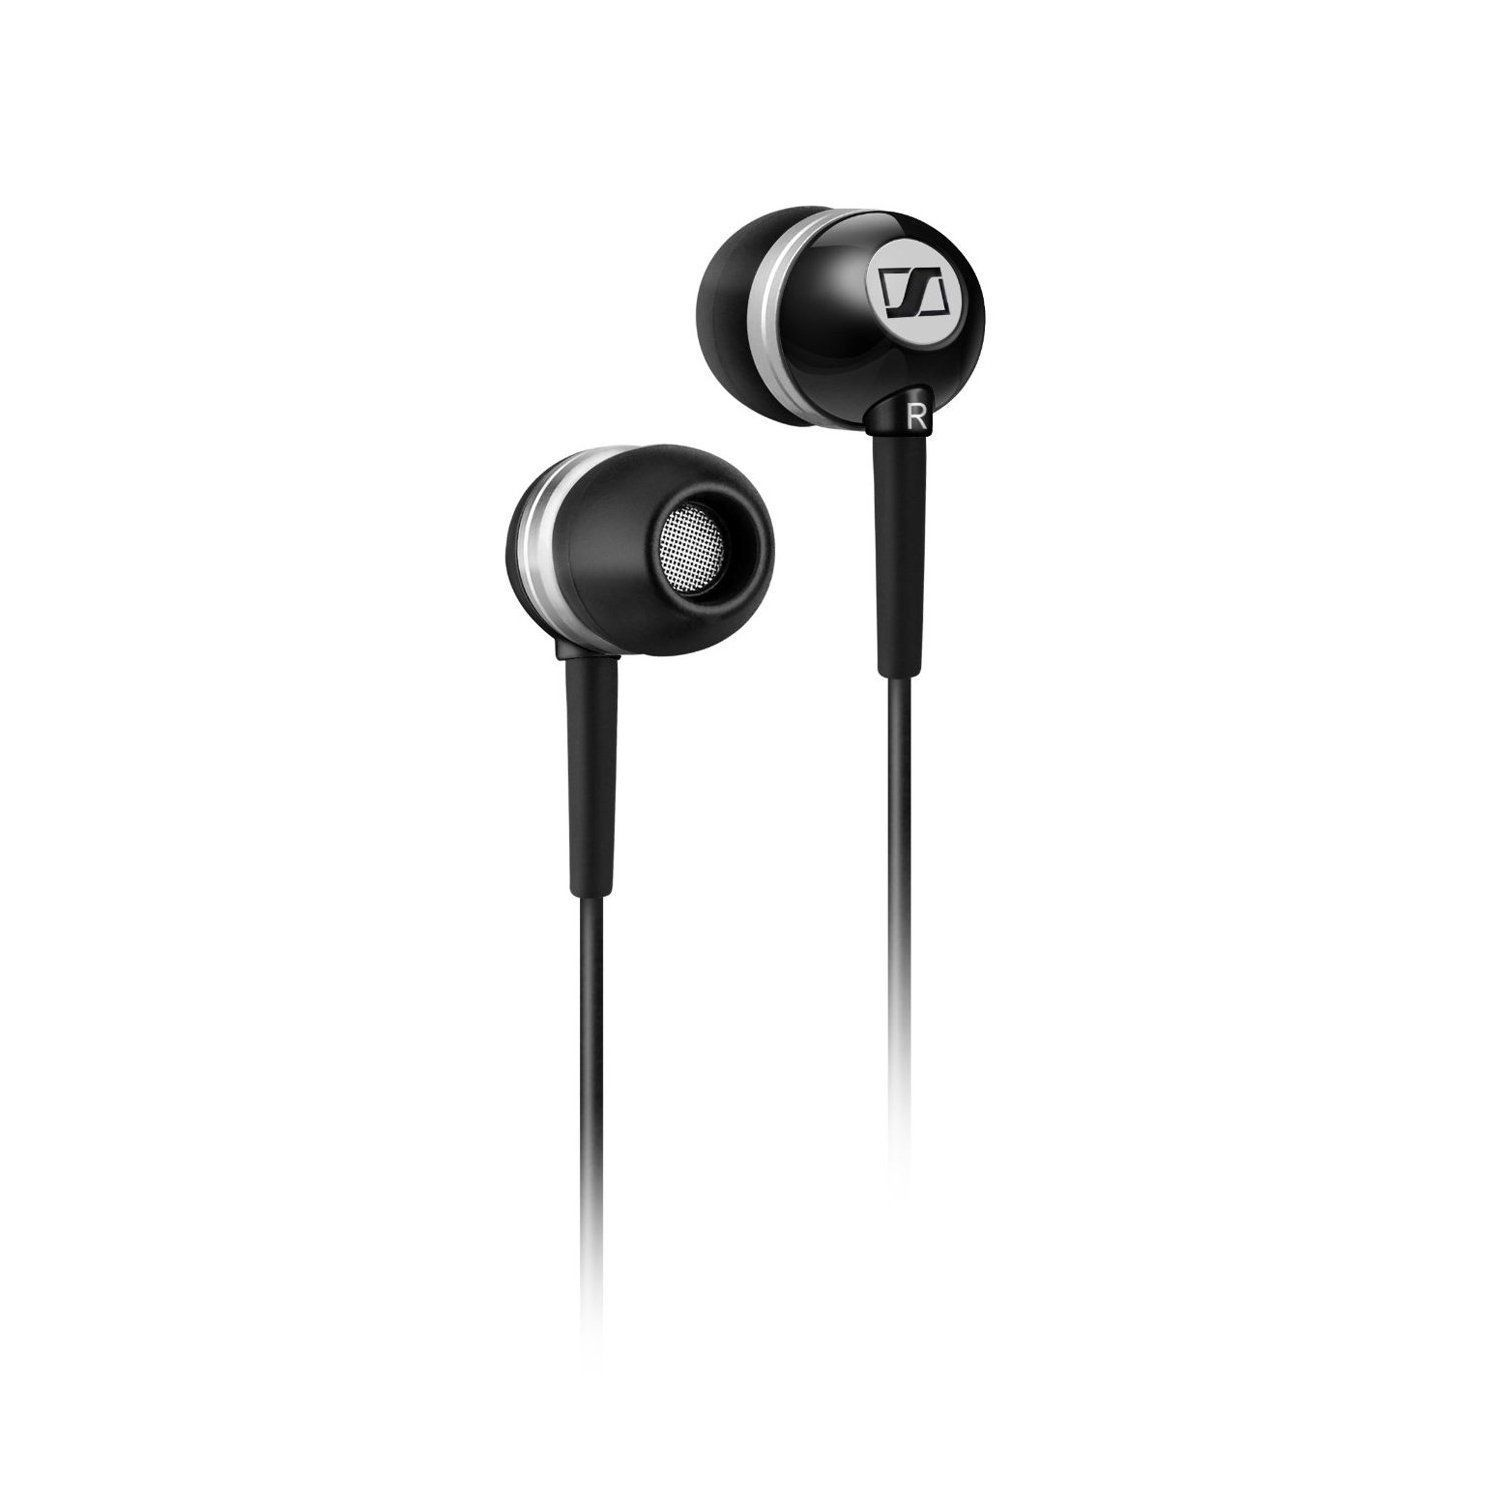 Sennheiser CX 300B MK II Precision Enhanced Bass Earbuds (Black)